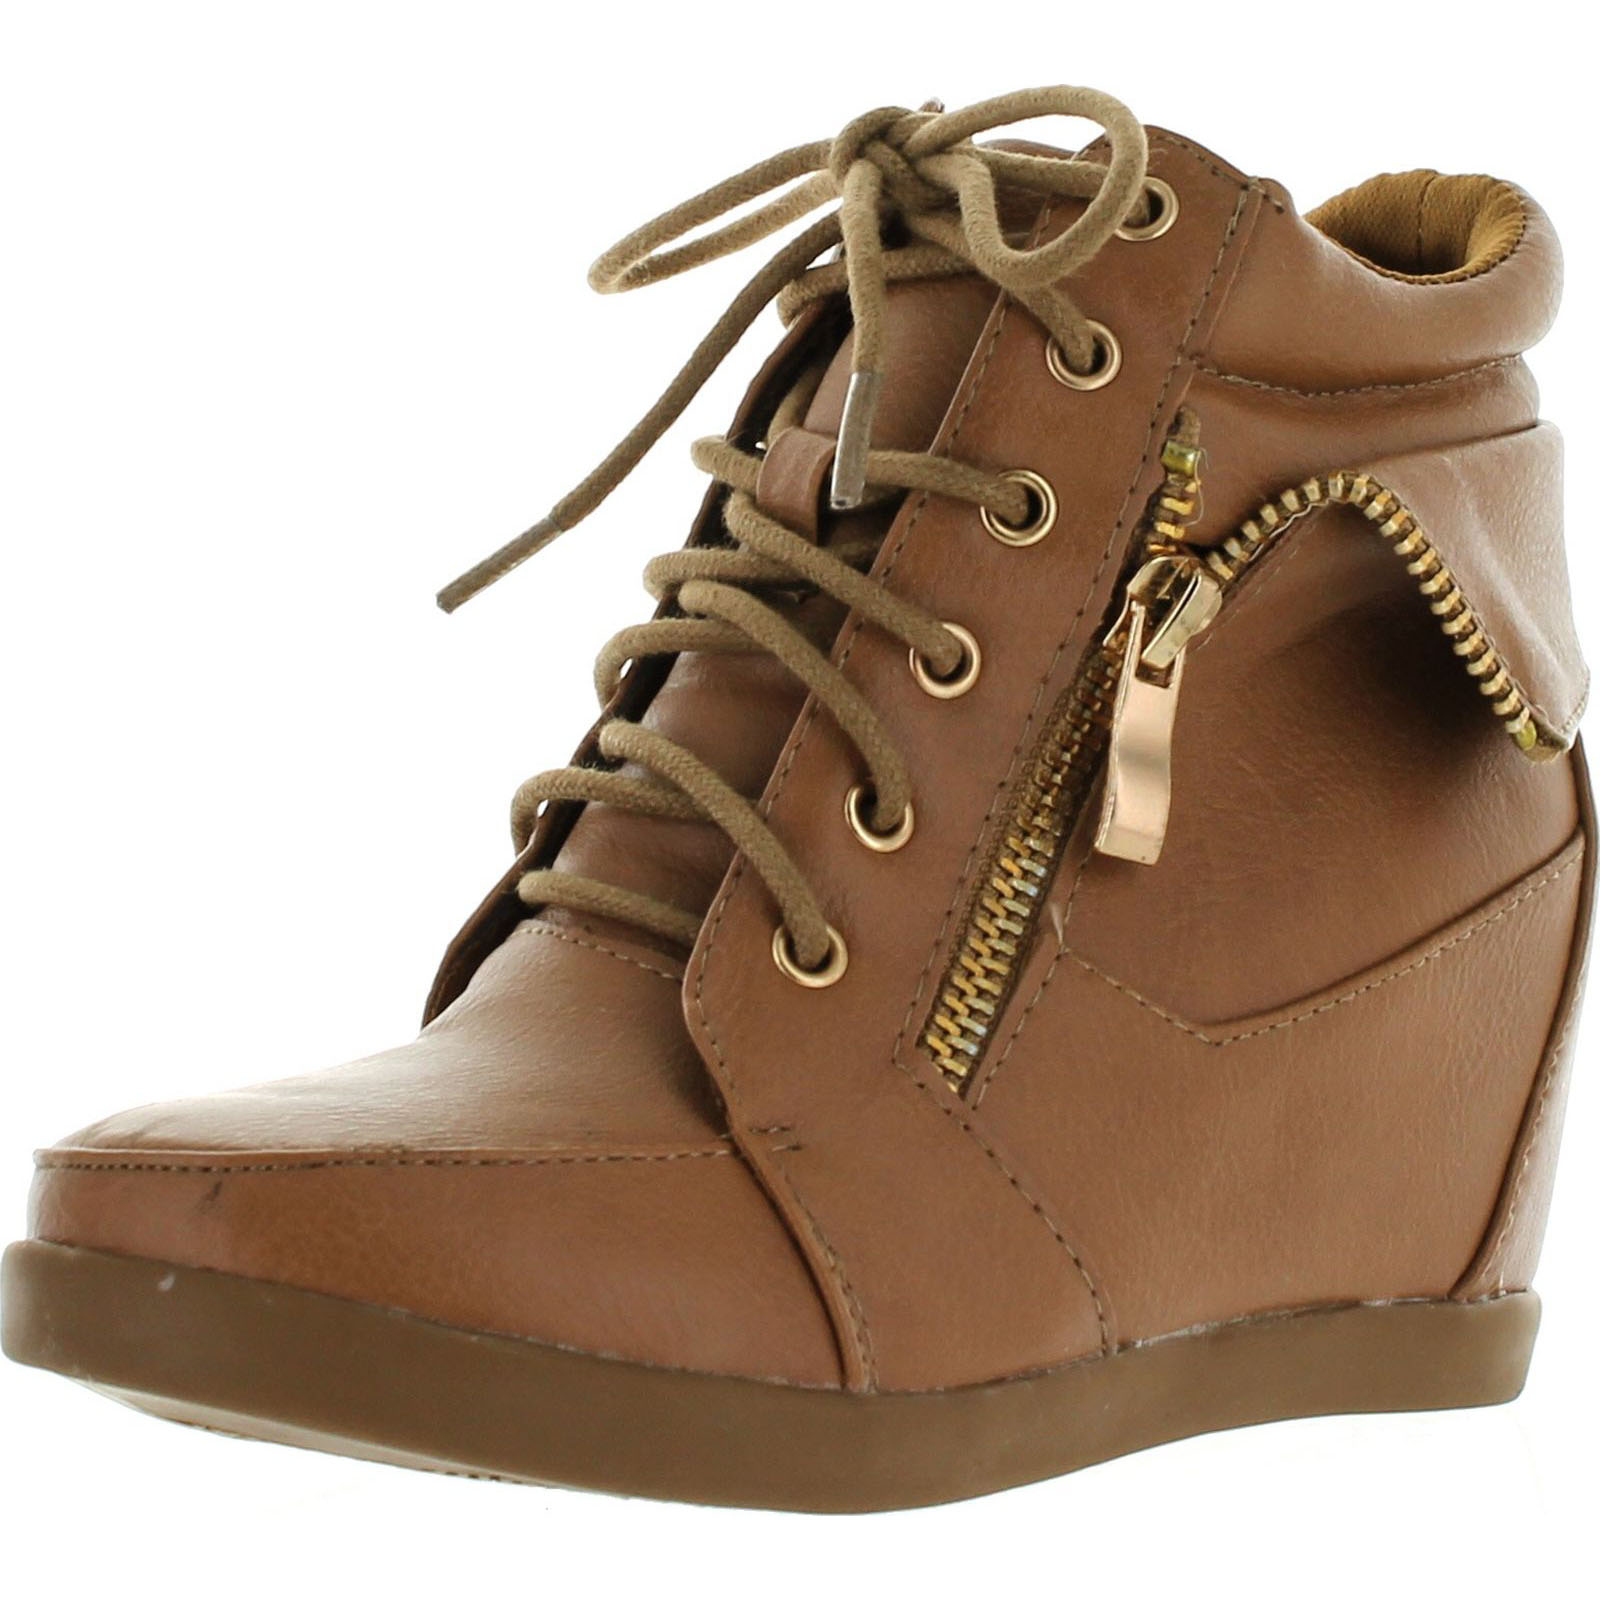 Peter-30K Kids Girls Leatherette Lace-Up High Top Wedge Fashion Sneaker Booties